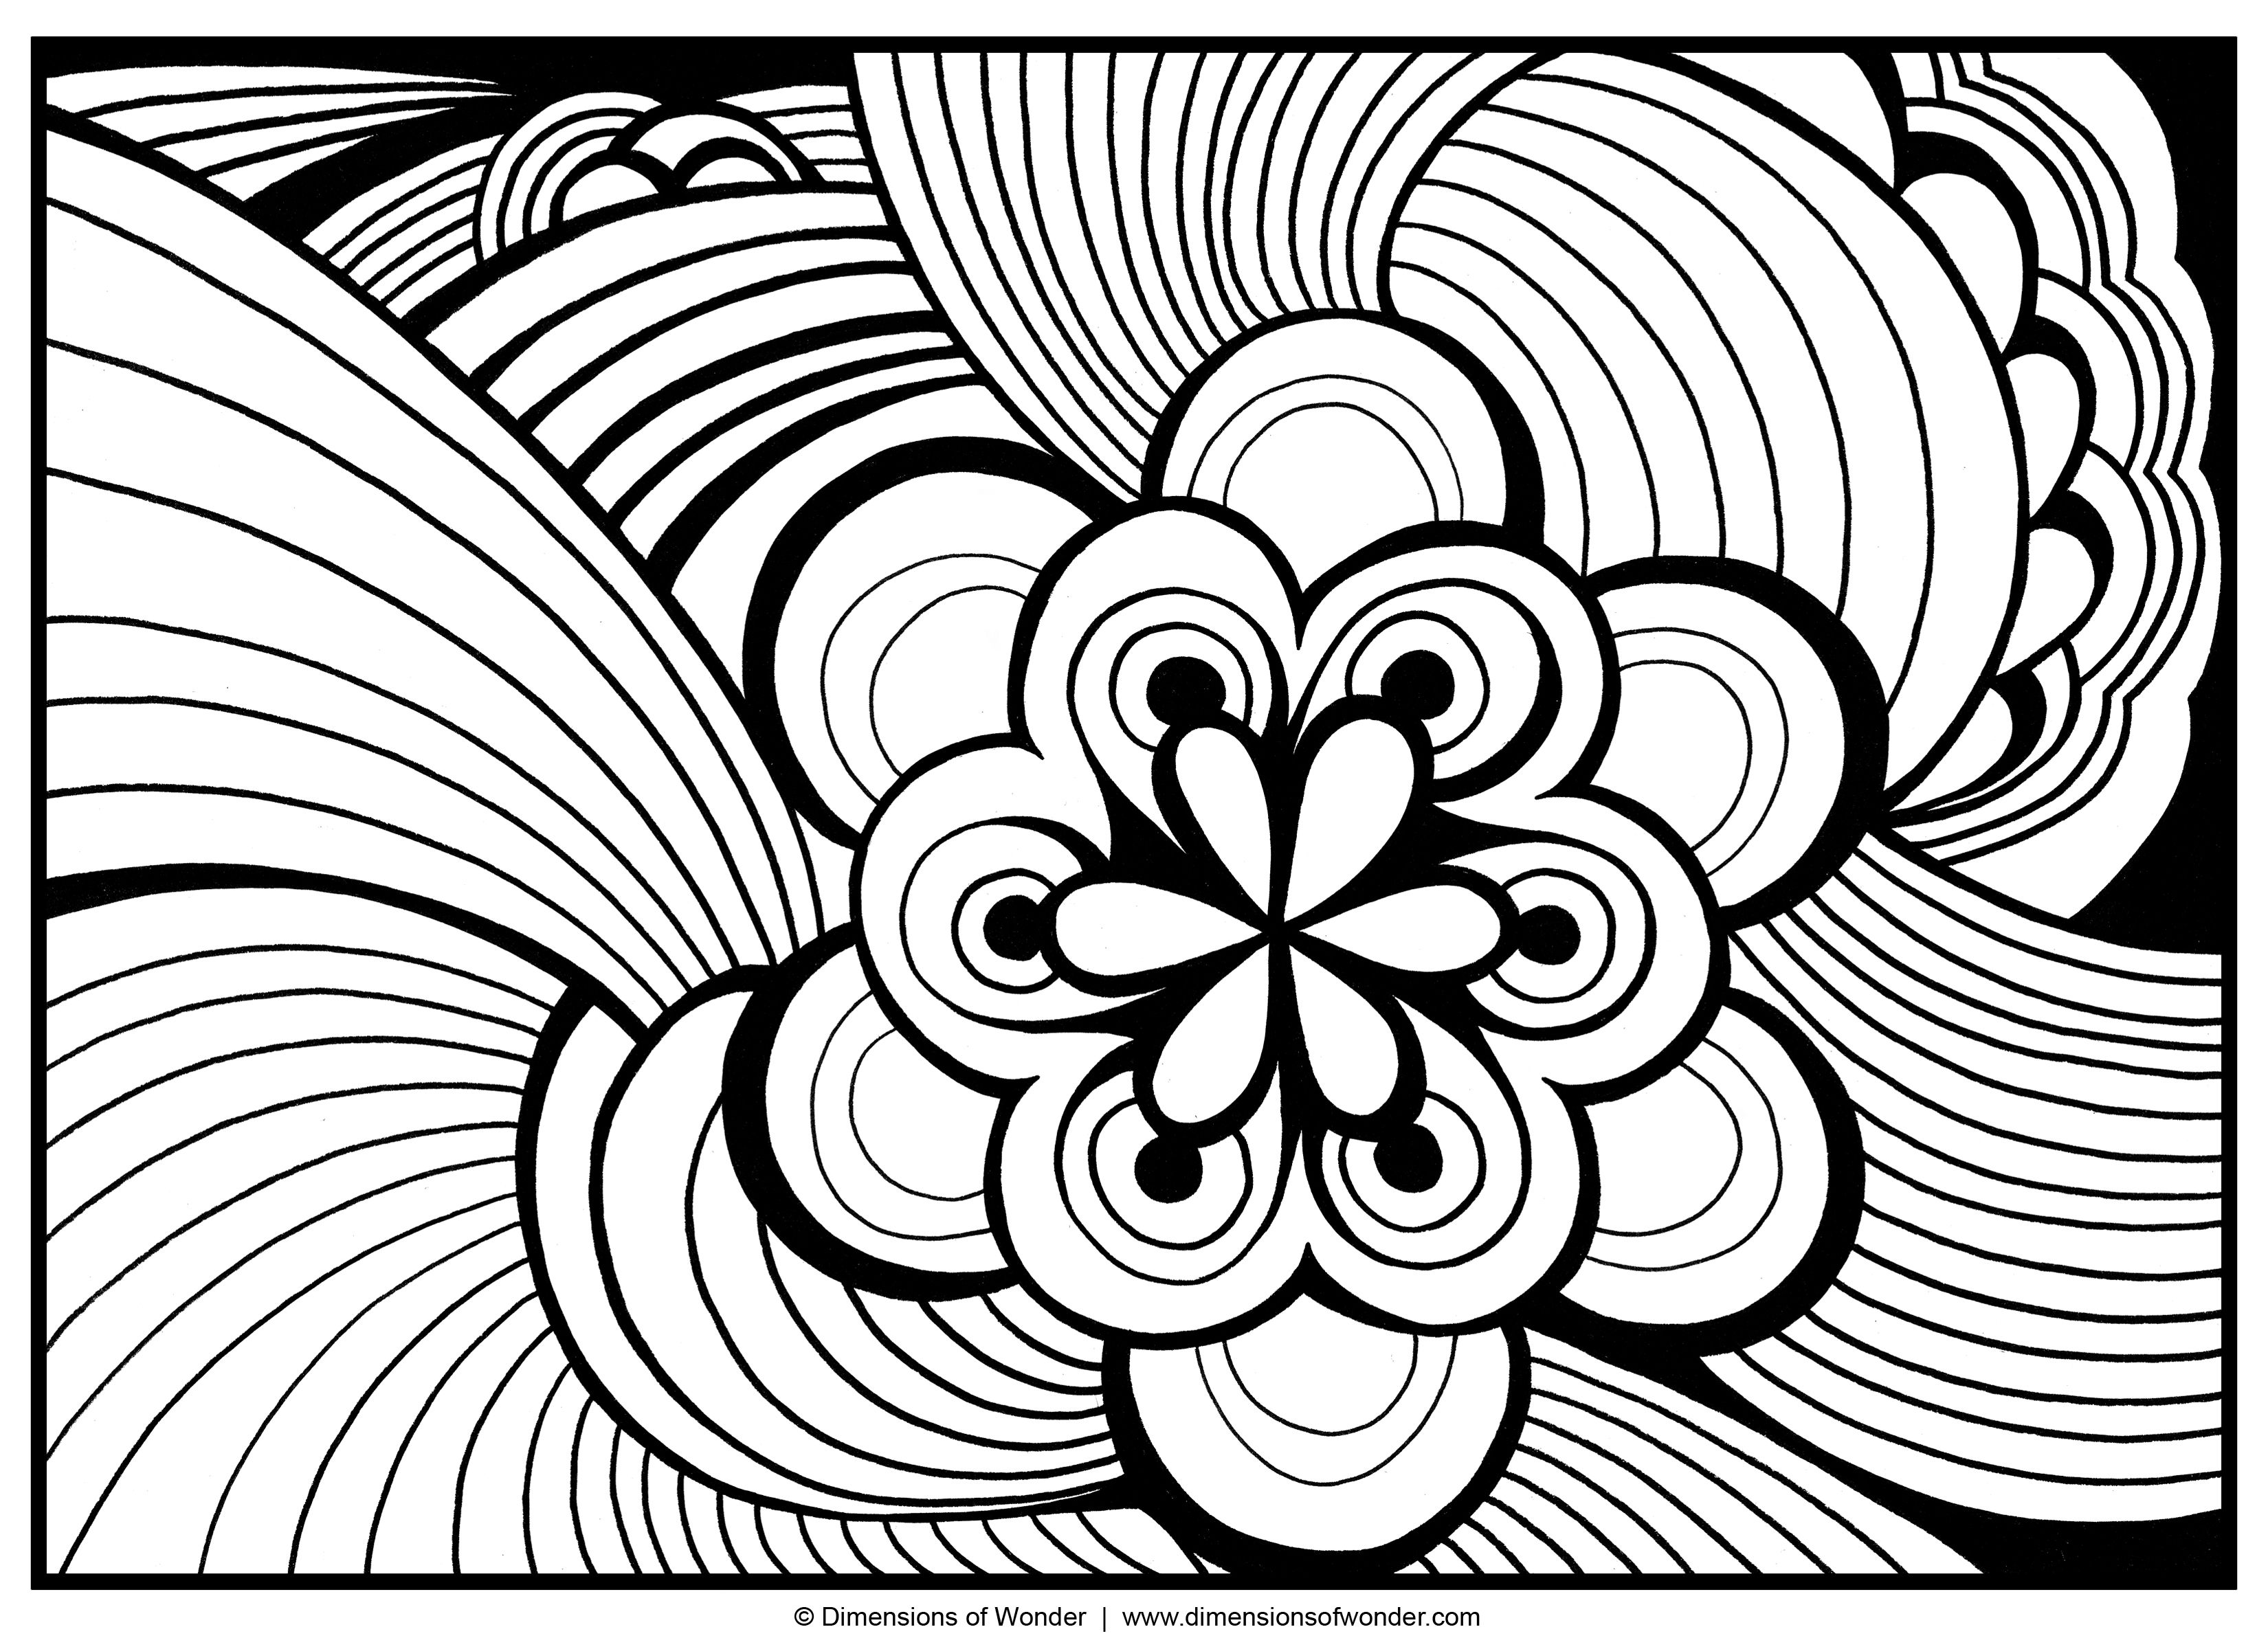 Coloring pages of flowers